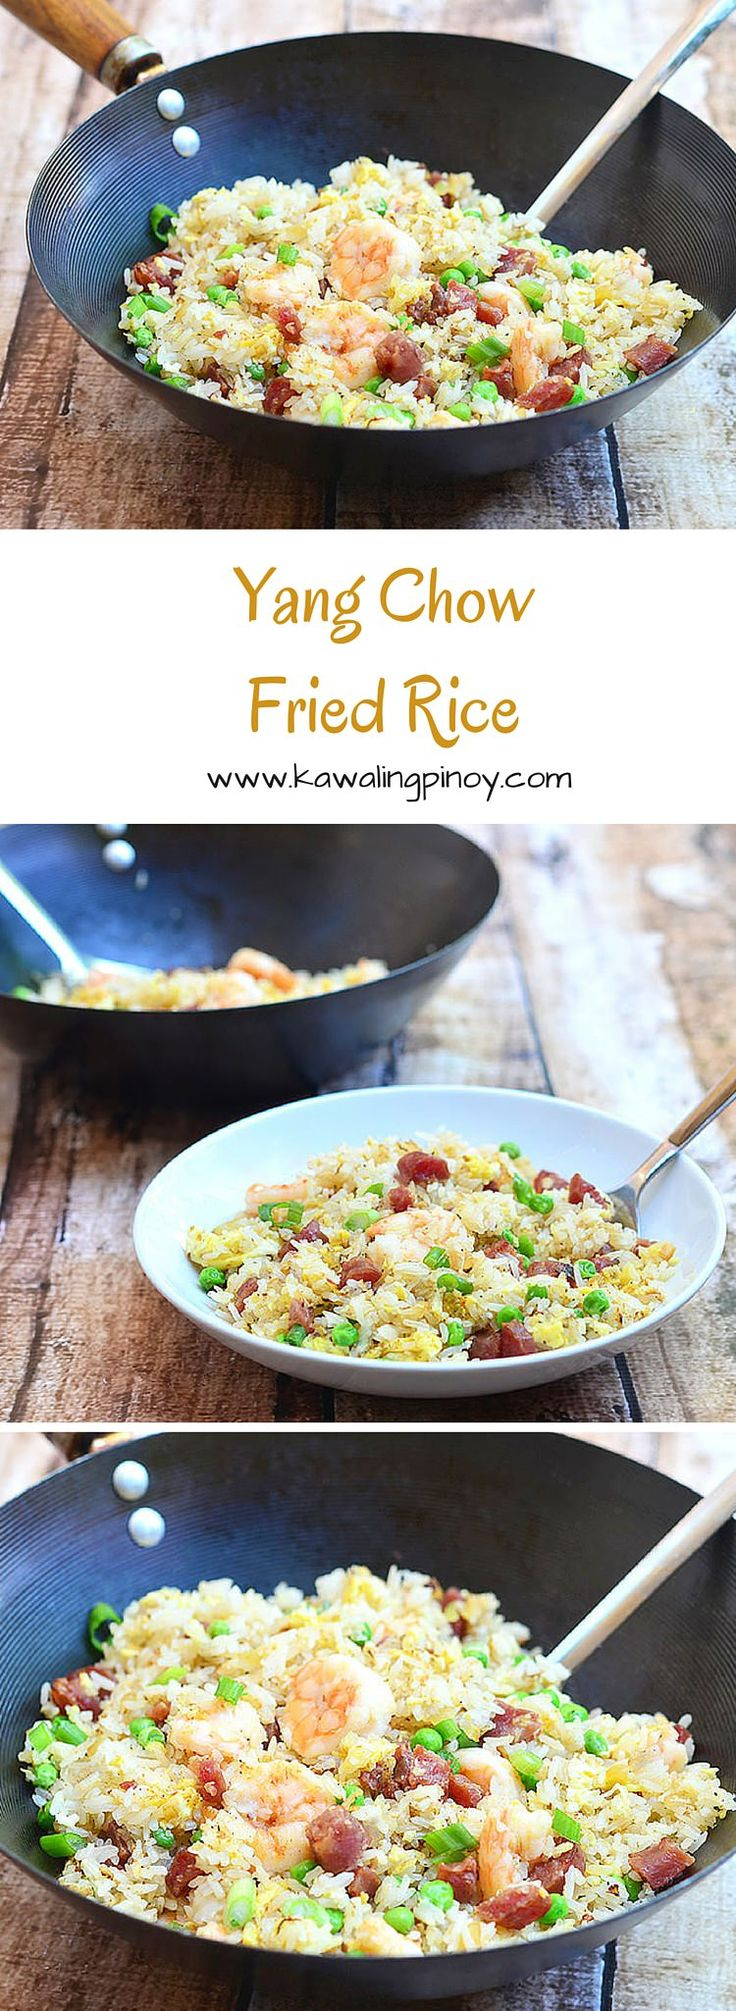 Yang Chow Fried Rice is a Chinese-style fried rice made with Chinese sausages, shrimp, green peas and green onions via @lalainespins